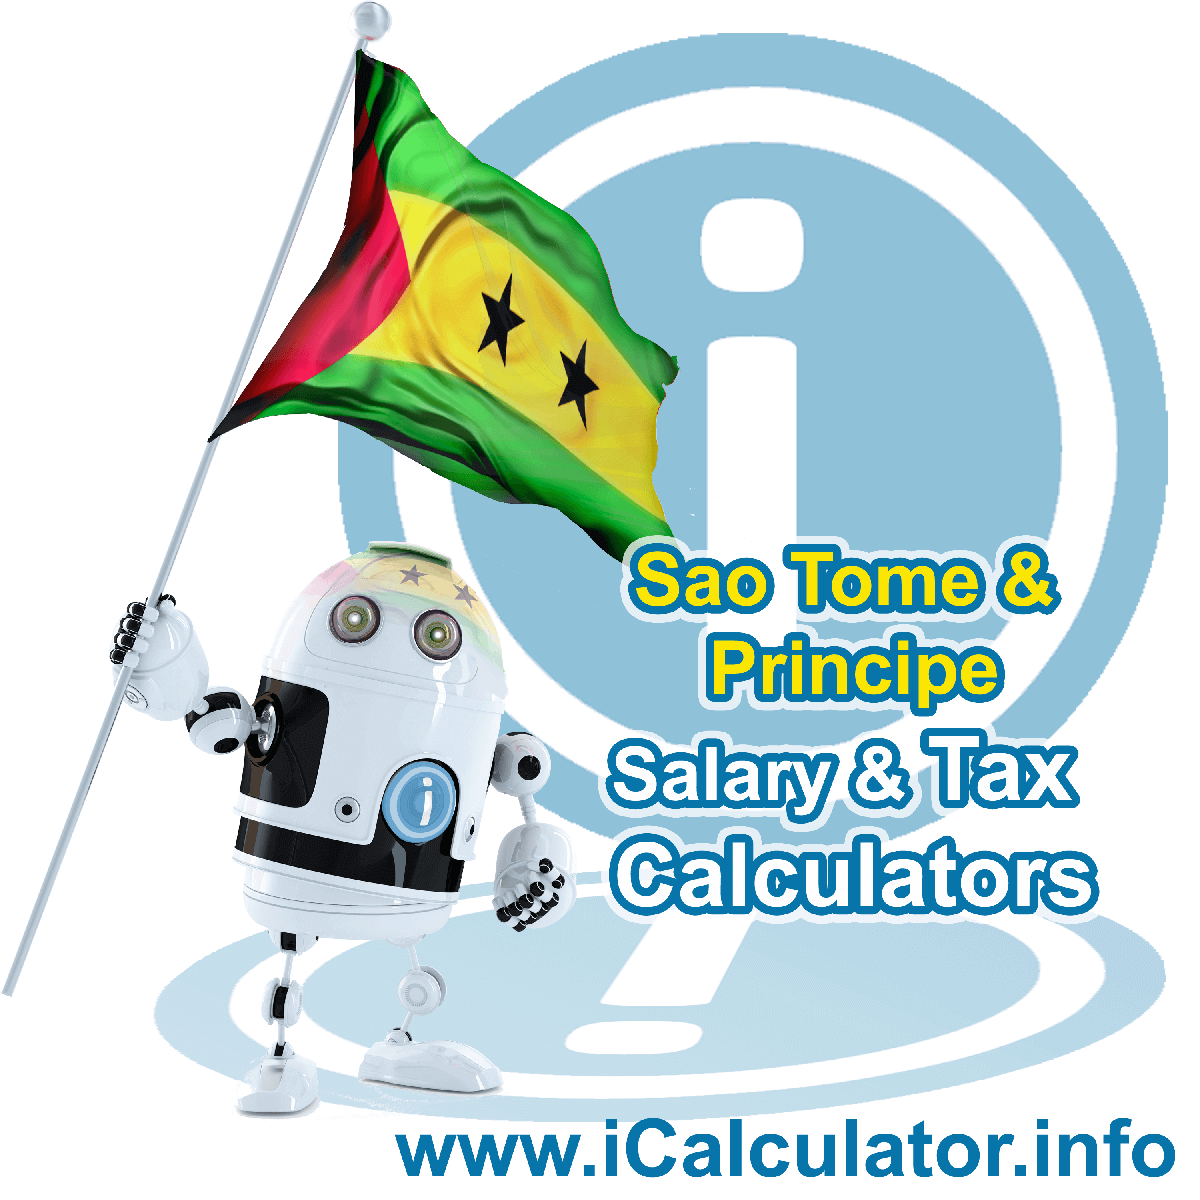 Sao Tome And Principe Wage Calculator. This image shows the Sao Tome And Principe flag and information relating to the tax formula for the Sao Tome And Principe Tax Calculator